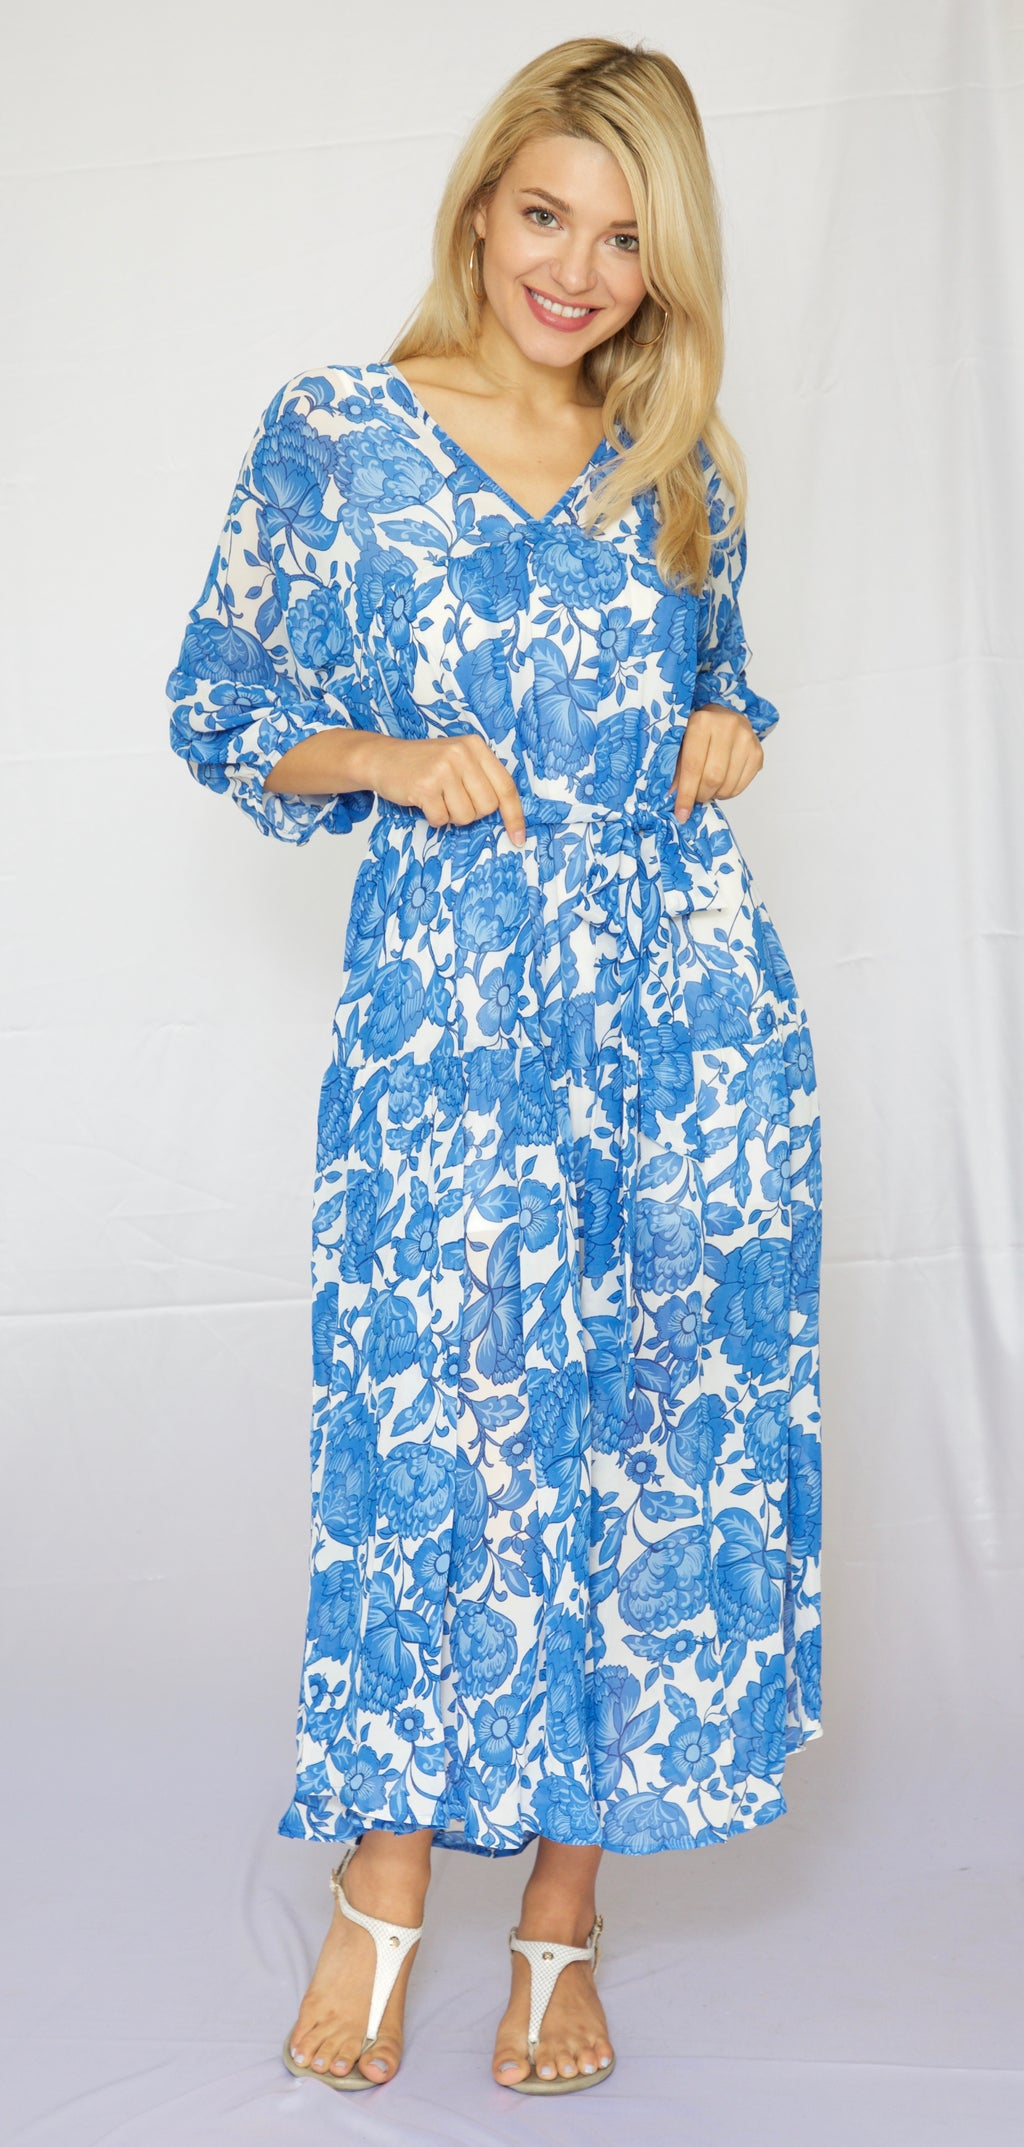 Trishia Grace - Trish Dress Blue China Floral